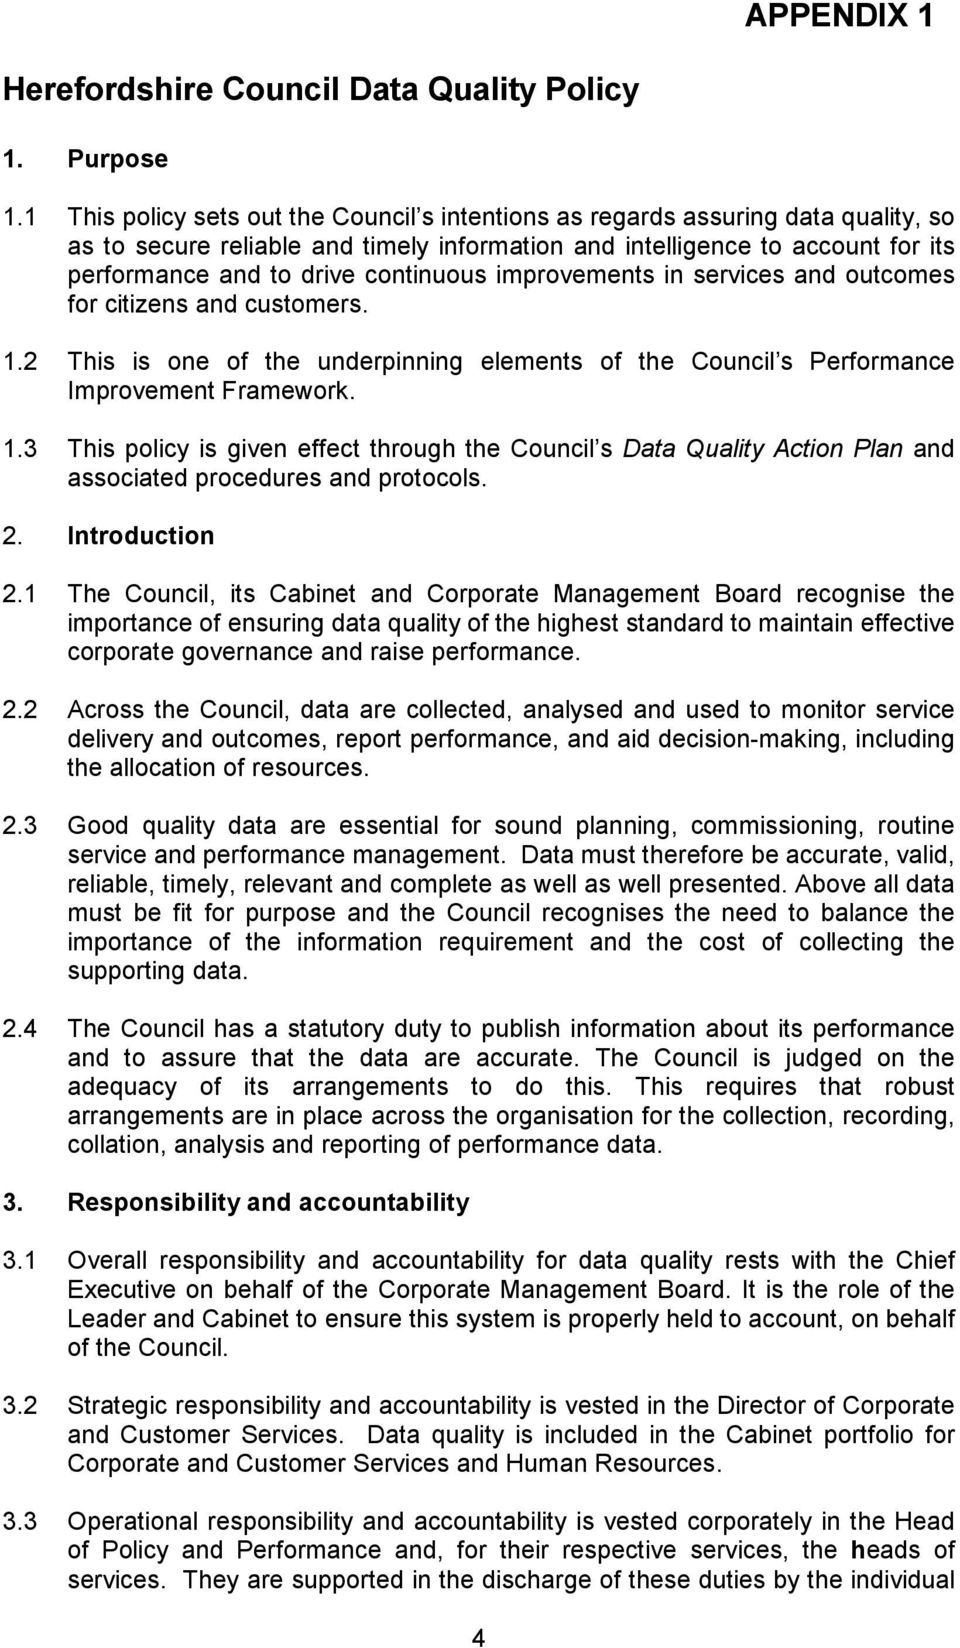 continuous improvements in services and outcomes for citizens and customers. 1.2 This is one of the underpinning elements of the Council s Performance Improvement Framework. 1.3 This policy is given effect through the Council s Data Quality Action Plan and associated procedures and protocols.